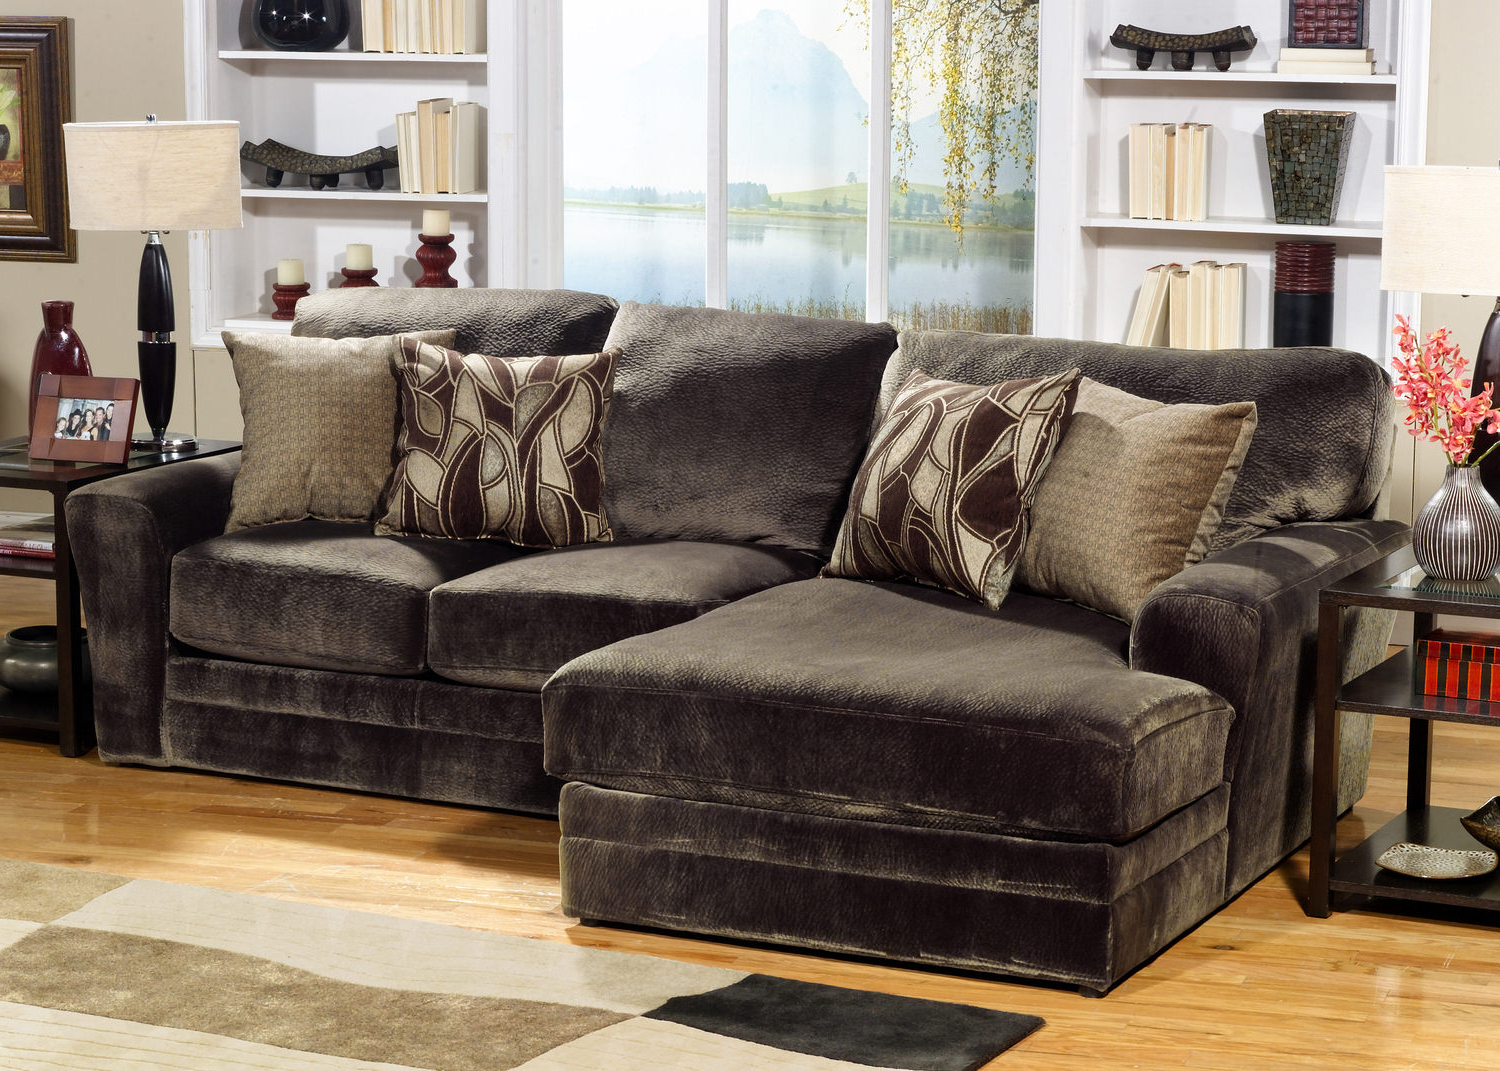 Rainier 2 Piece Modular Sectional (View 17 of 20)